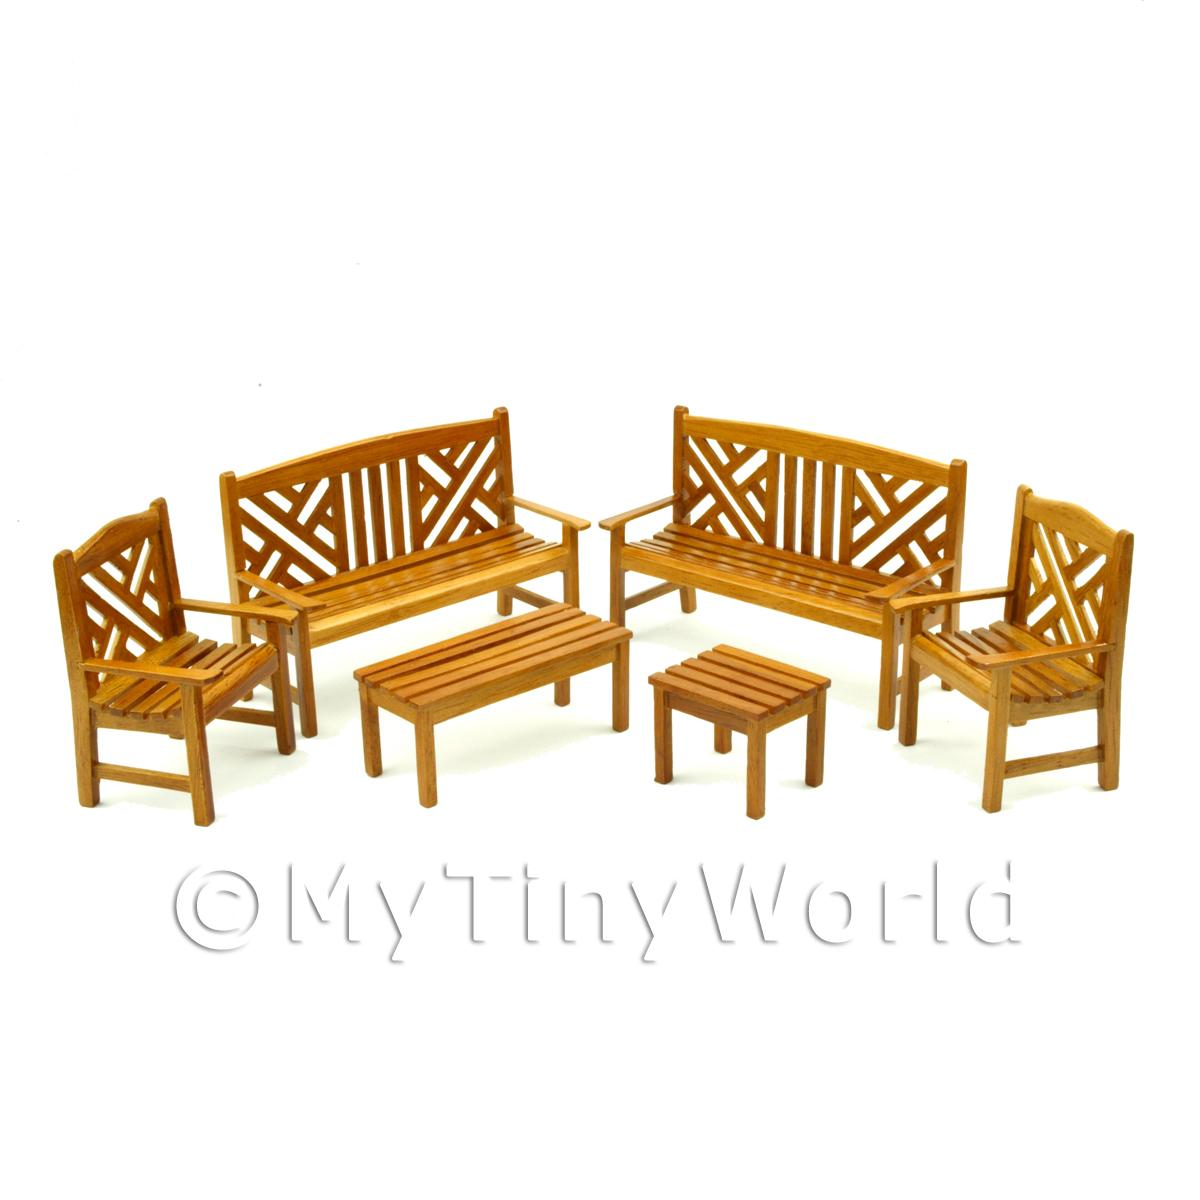 6 Piece Dolls House Miniature Elegant Garden Bench Set